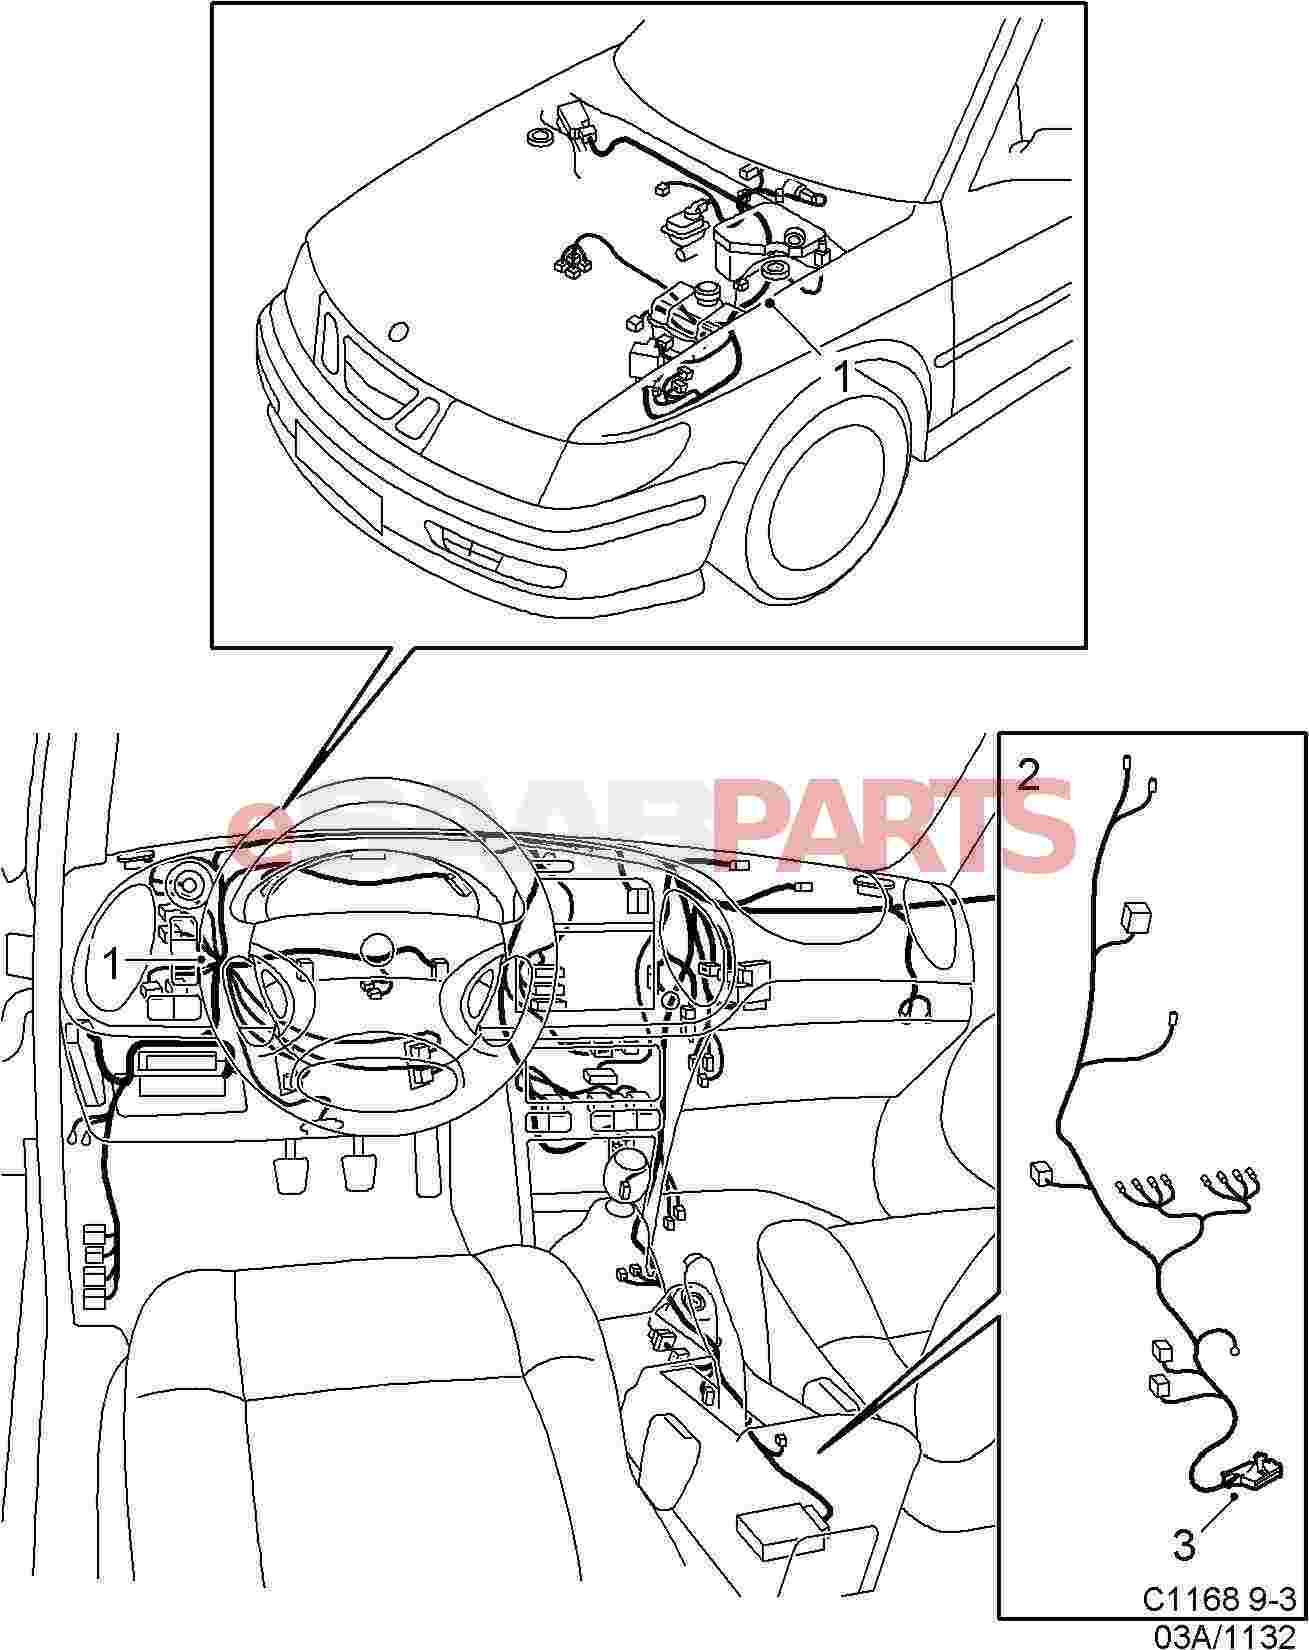 2002 Saab 9 3 Radio Wiring Diagrams - Wiring Diagrams  Saab Wiring Diagrams on